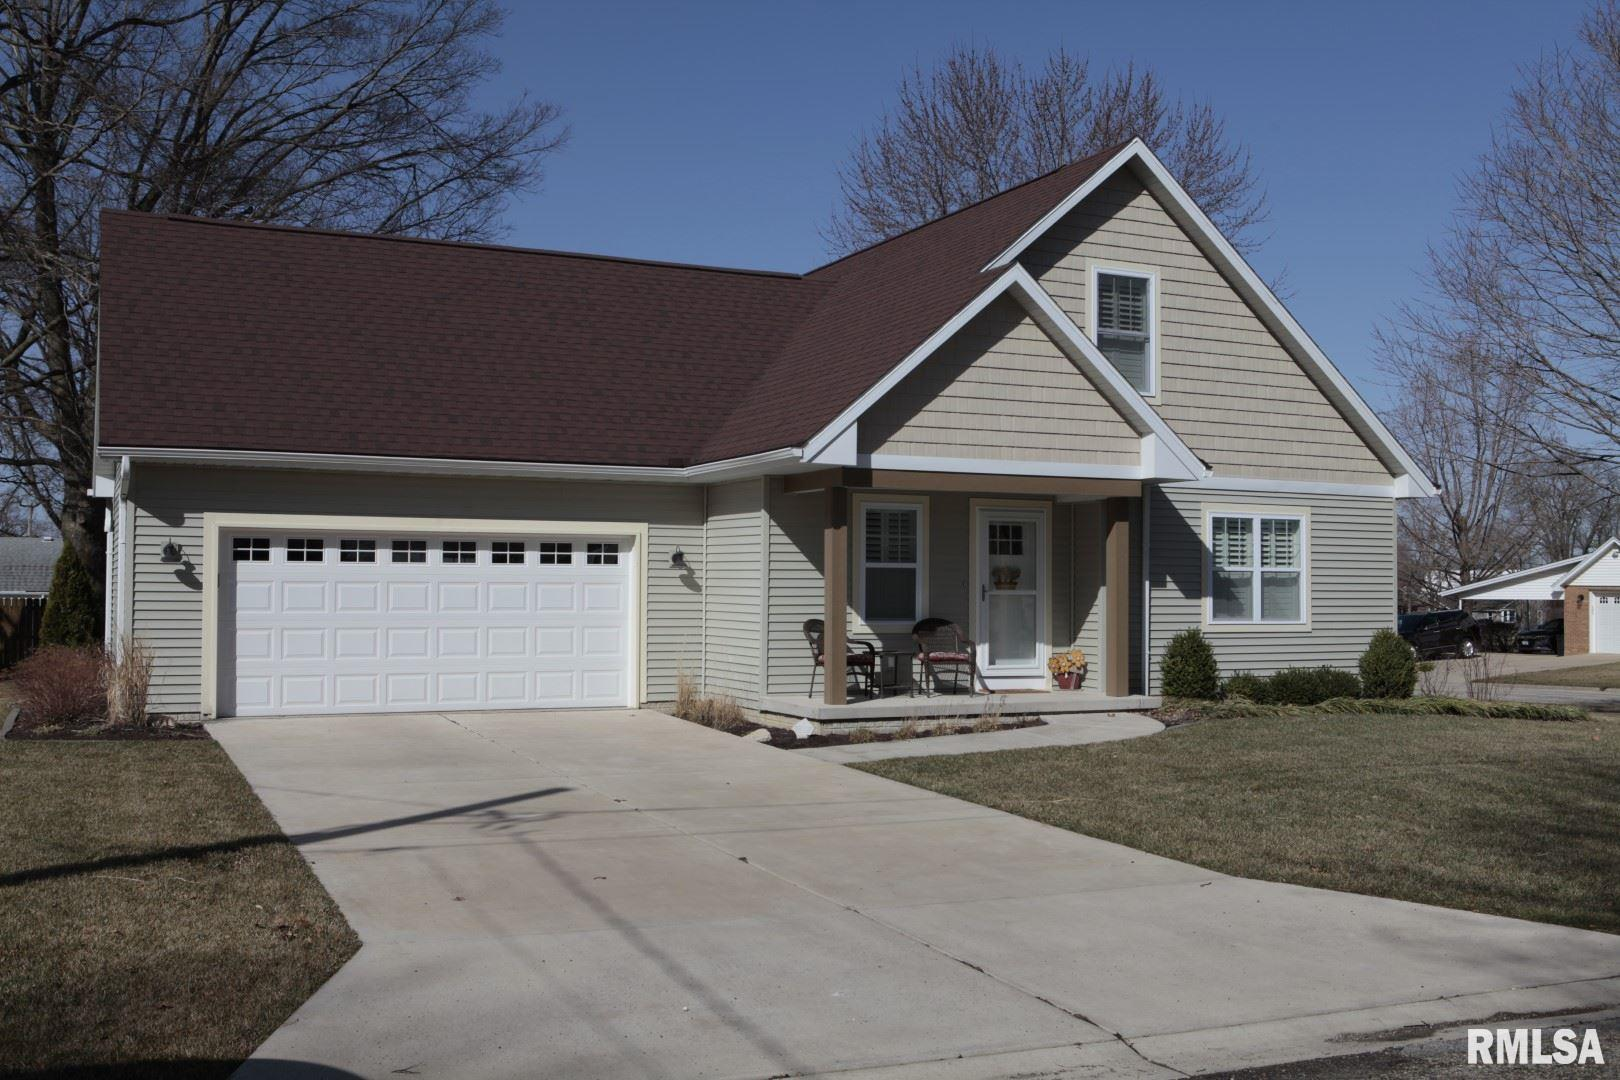 401 S CHESTNUT Property Photo - Tremont, IL real estate listing